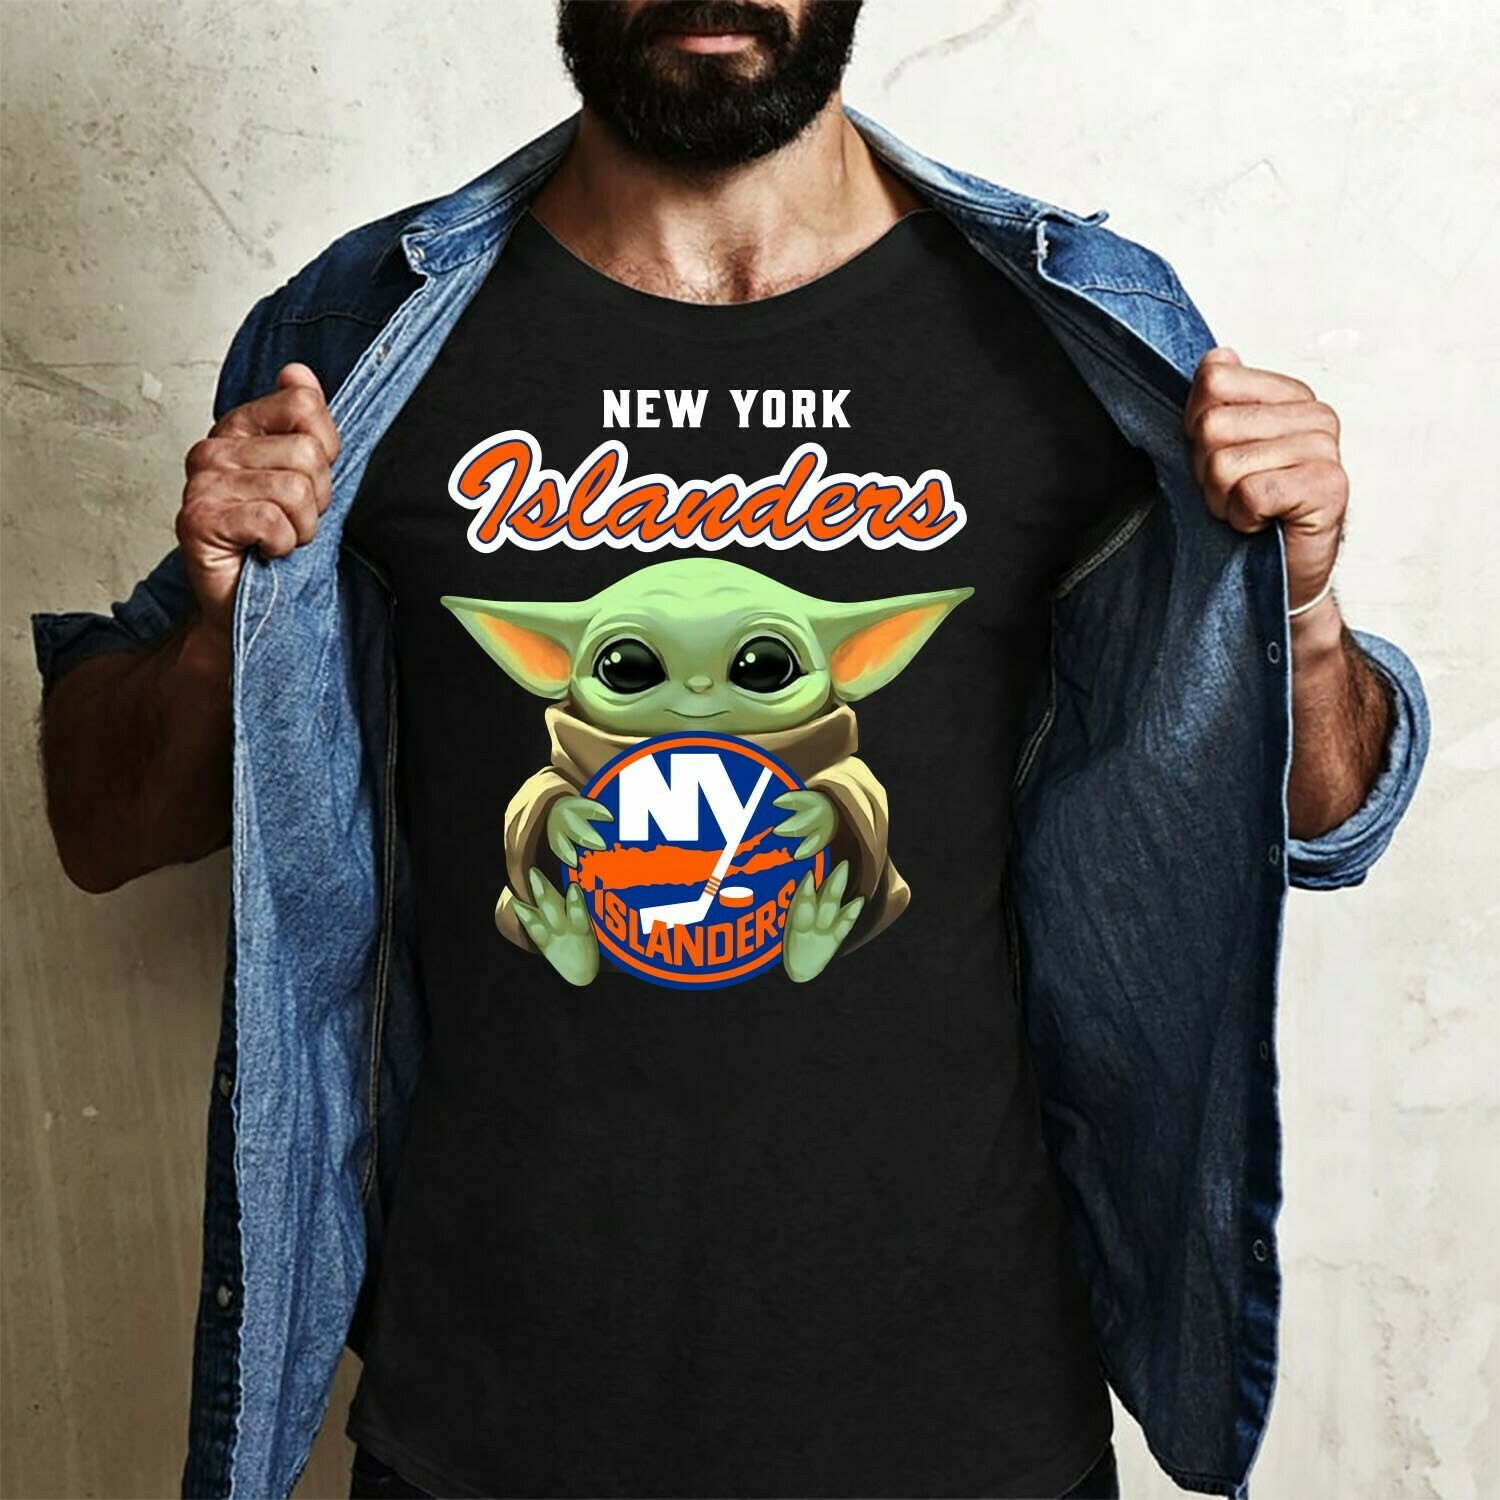 New York Islanders Baby Yoda shirt, Star Wars Unisex cotton Shirt, Baby Yoda Football team T-Shirt, T-Shirt With Sayings Long Sleeve Sweatshirt Hoodie Jolly Family Gifts